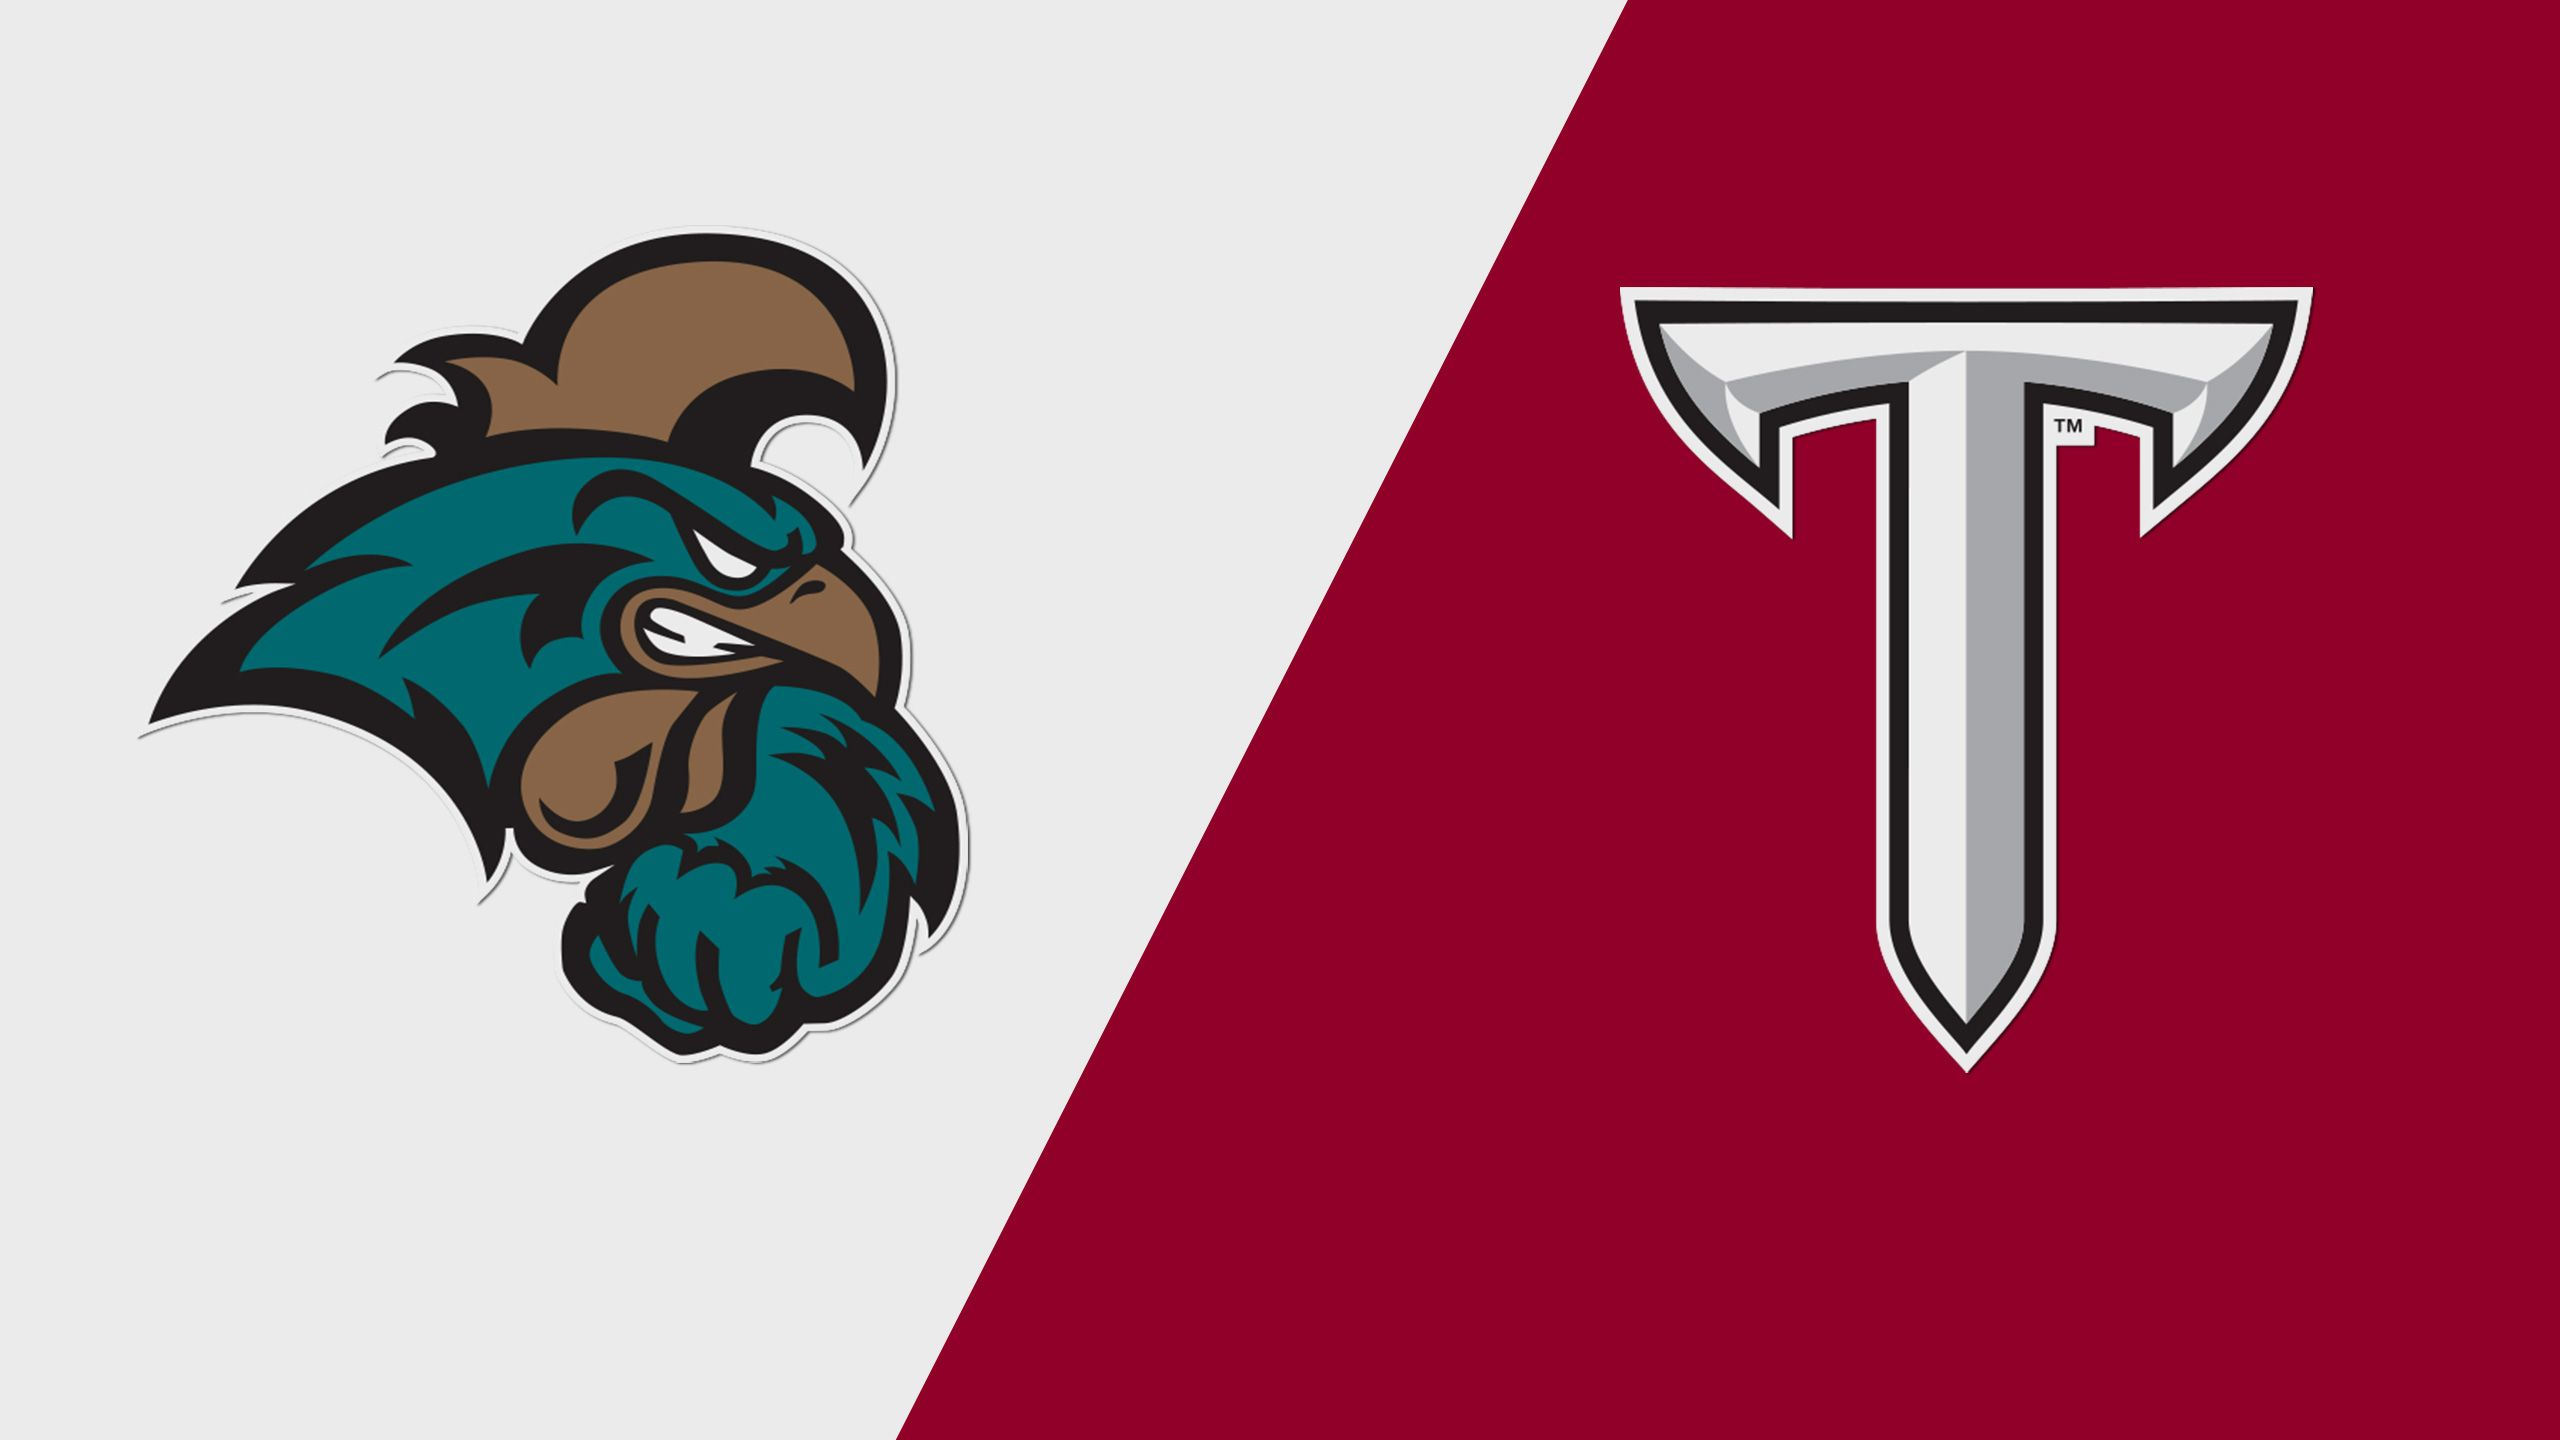 #21 Coastal Carolina vs. Troy (Baseball)